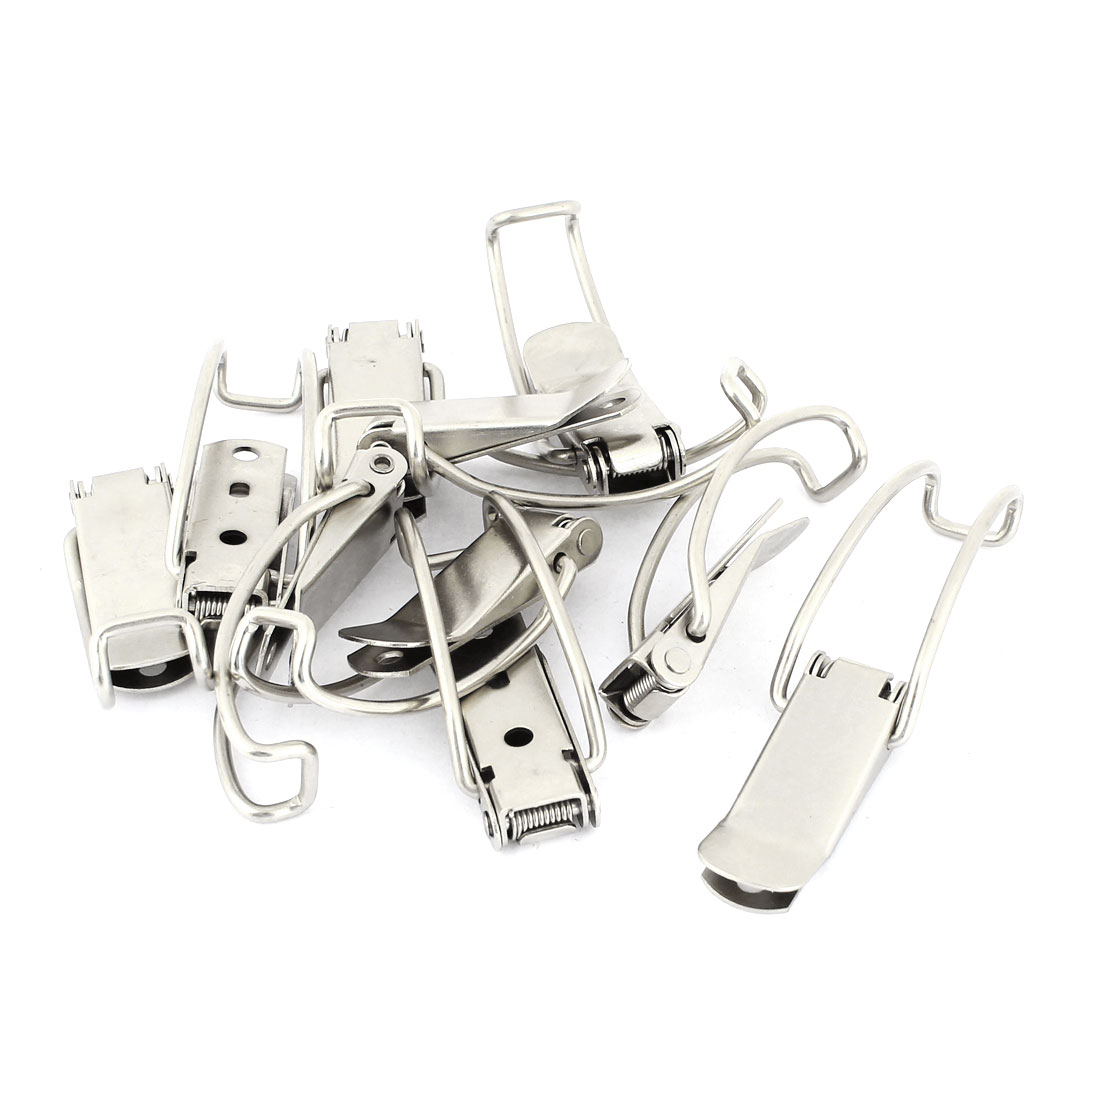 Box Chest Case Spring Loaded Silver Tone Draw Toggle Latch 10 Set